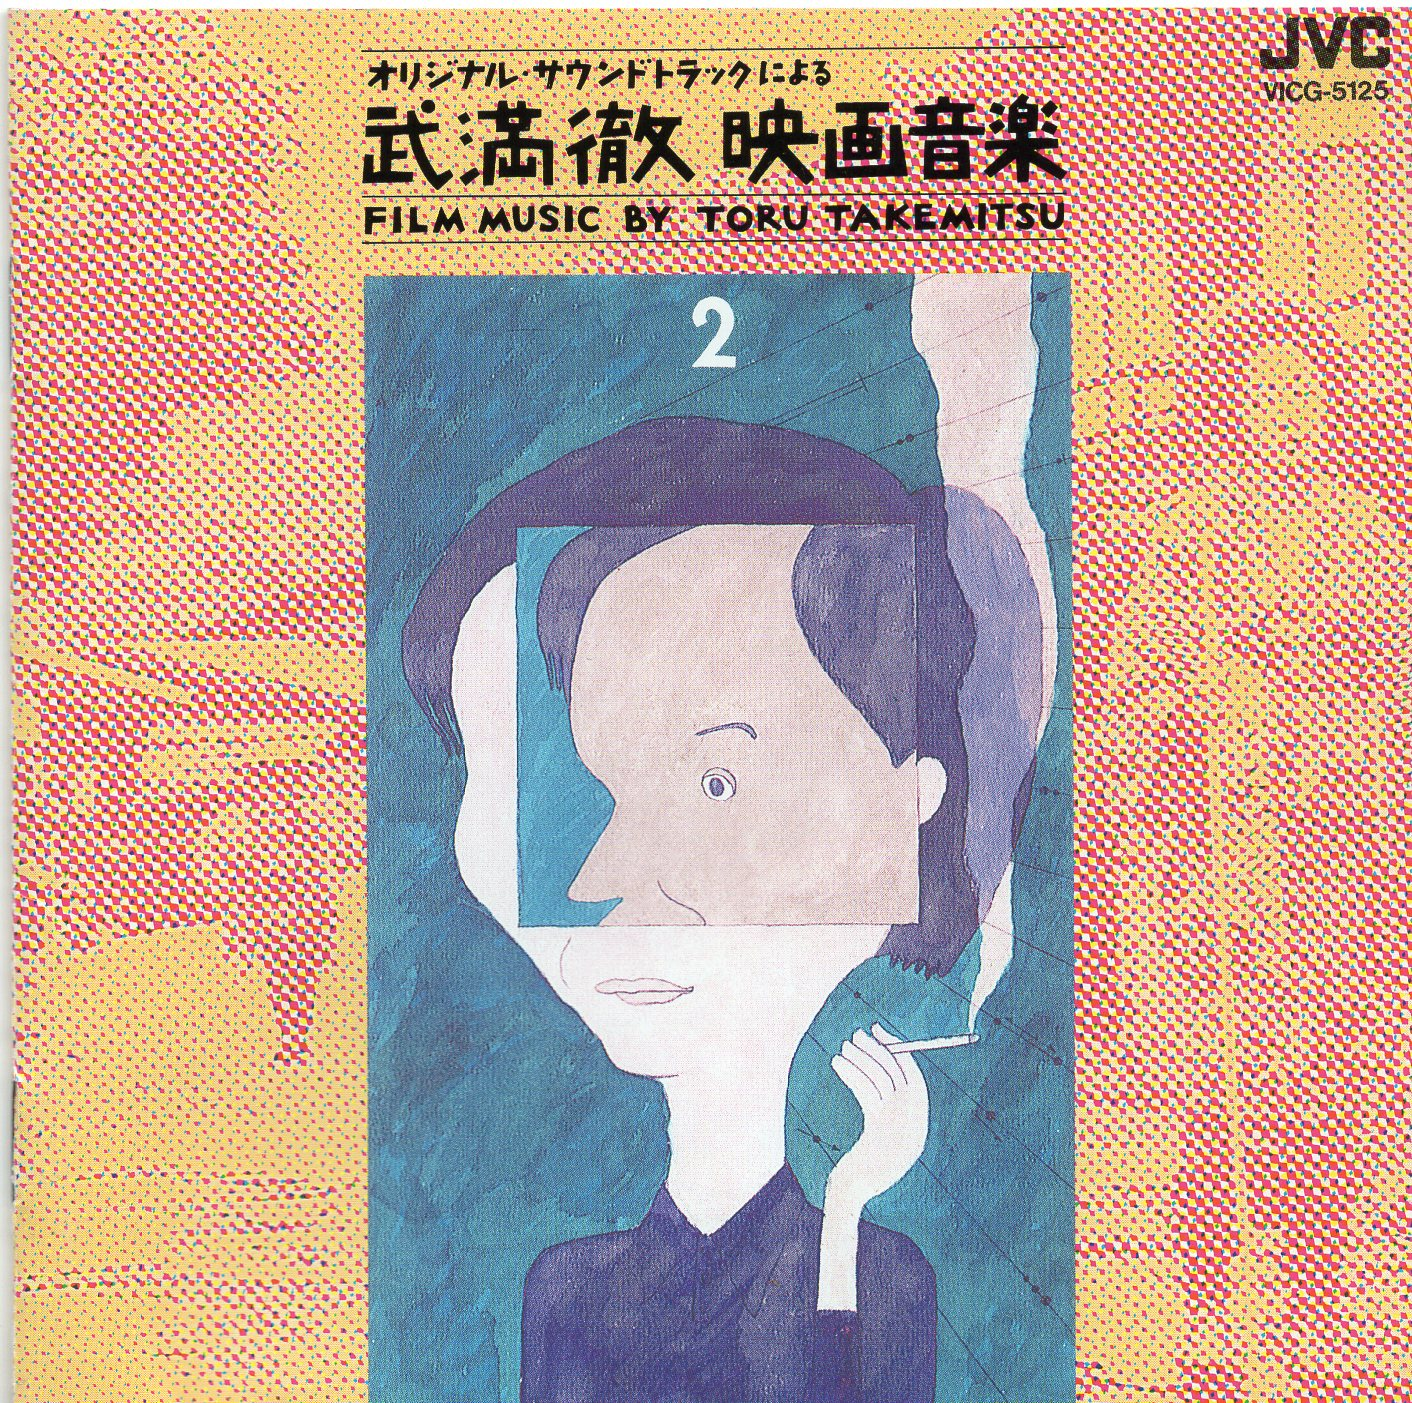 """Film Music by Toru Takemitsu 2"" Toru Takemitsu"